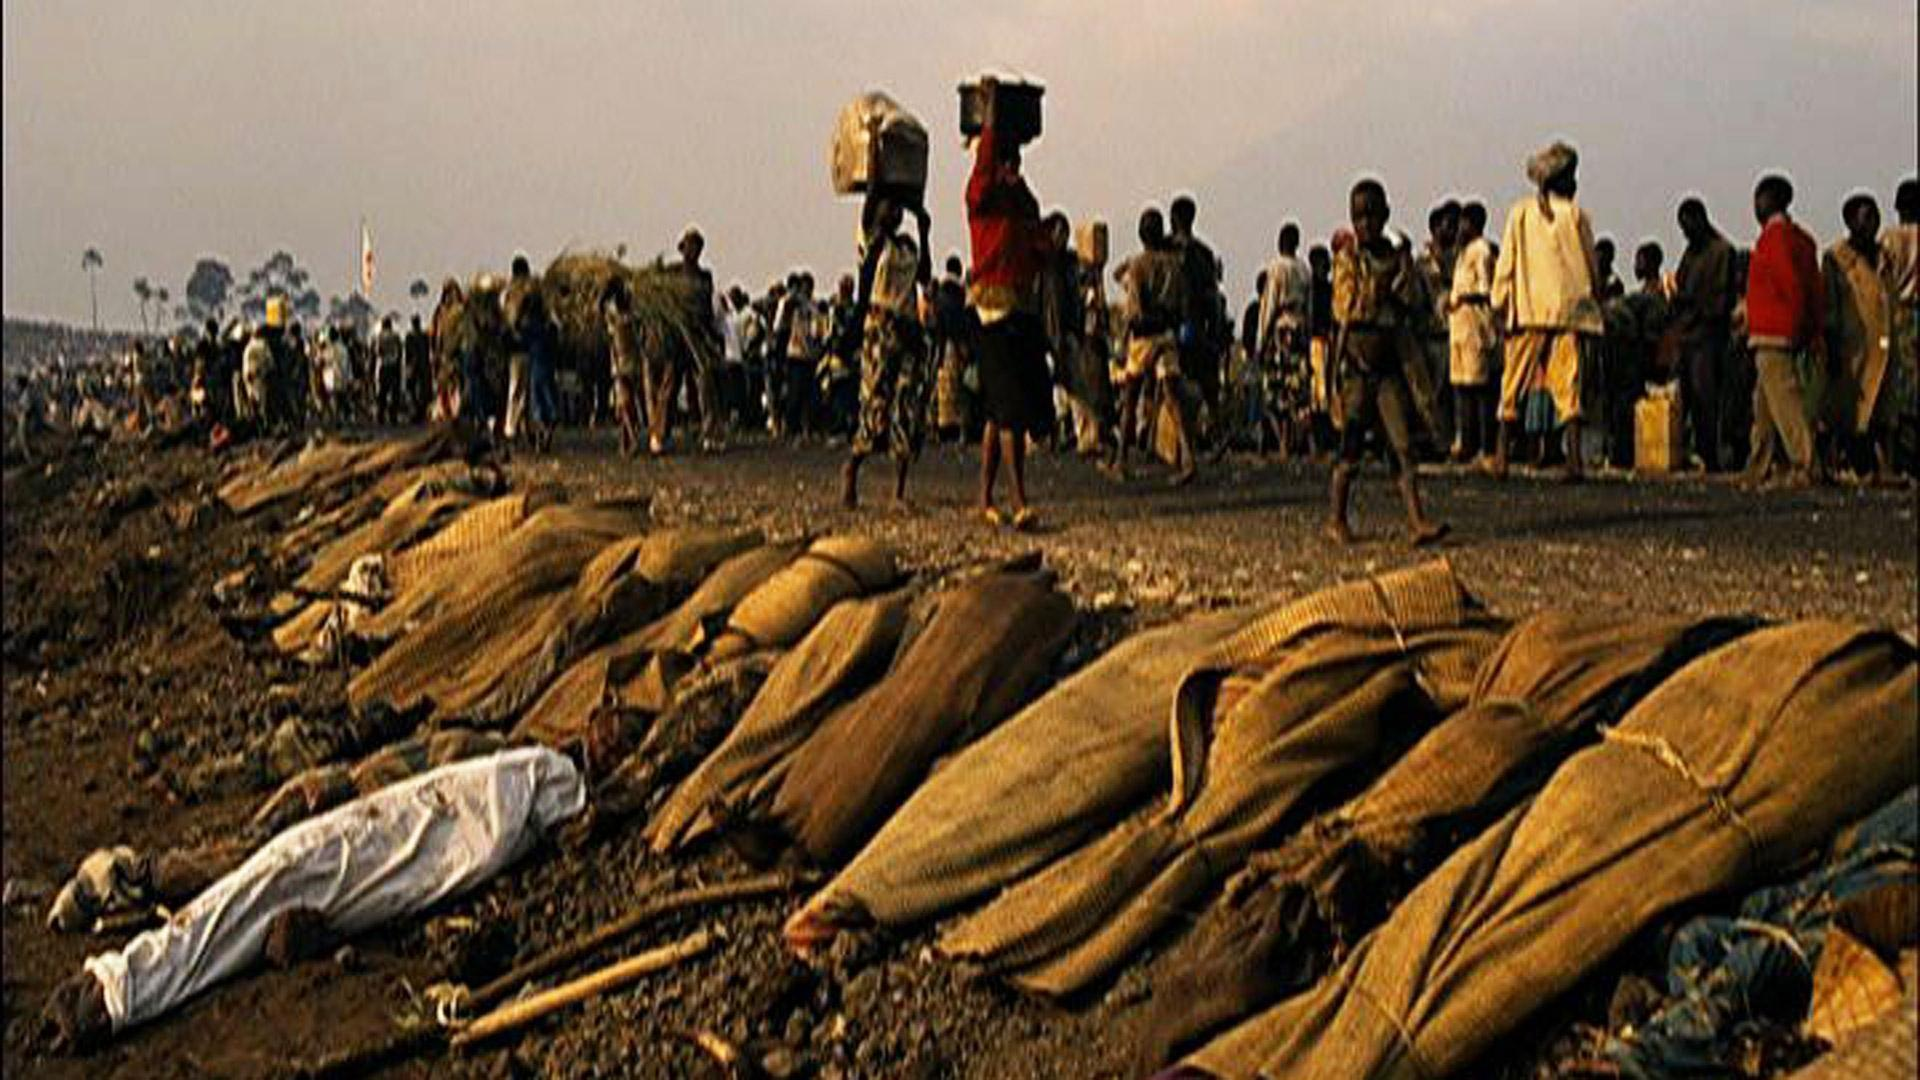 an investigation into the nature of the rwandan genocide in 1994 Judgement in a criminal case of genocide prosecutor  francois bazaramba (r  the rwandan genocide for  political nature of the events under investigation.